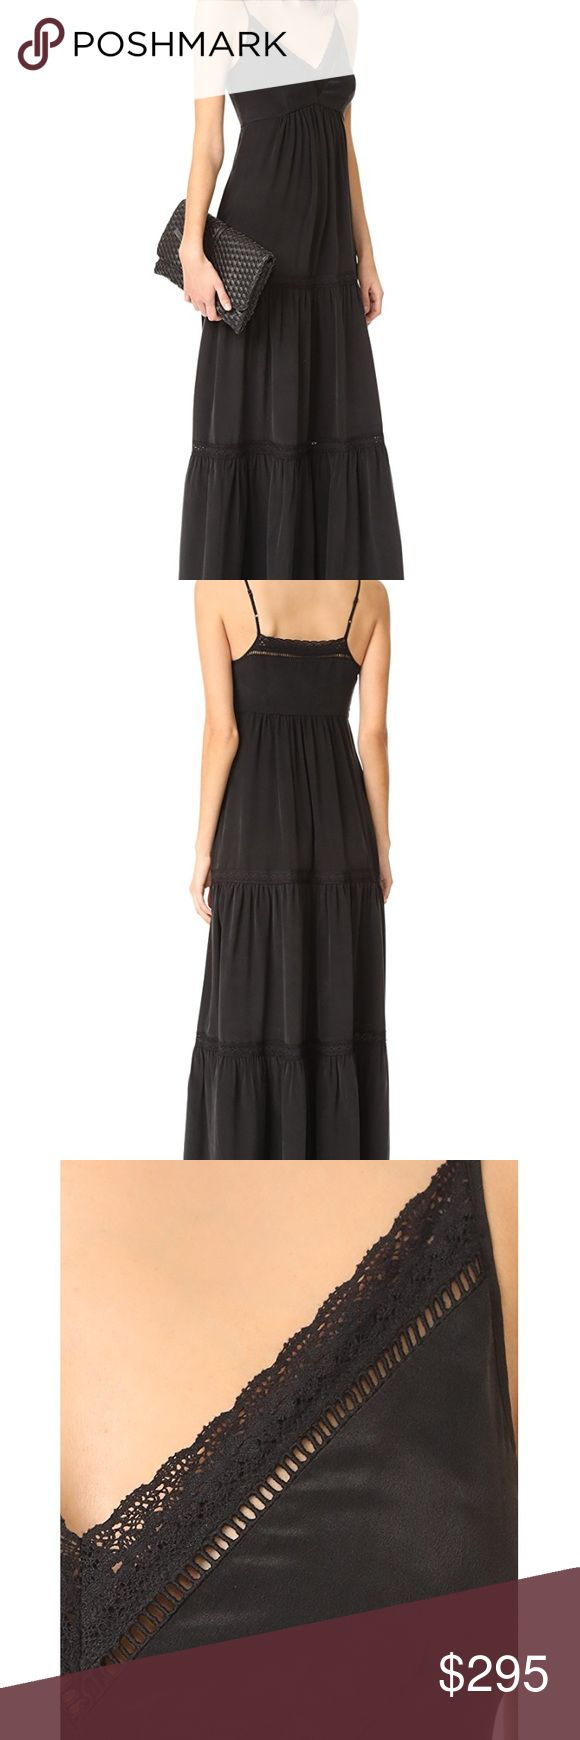 L'Agence gorgeous lace trim maxi dress Black lace trim maxi dress by L'Agence. Very gently used - currently on sale for $565 and sold out at Nordstrom!! L'AGENCE Dresses Maxi